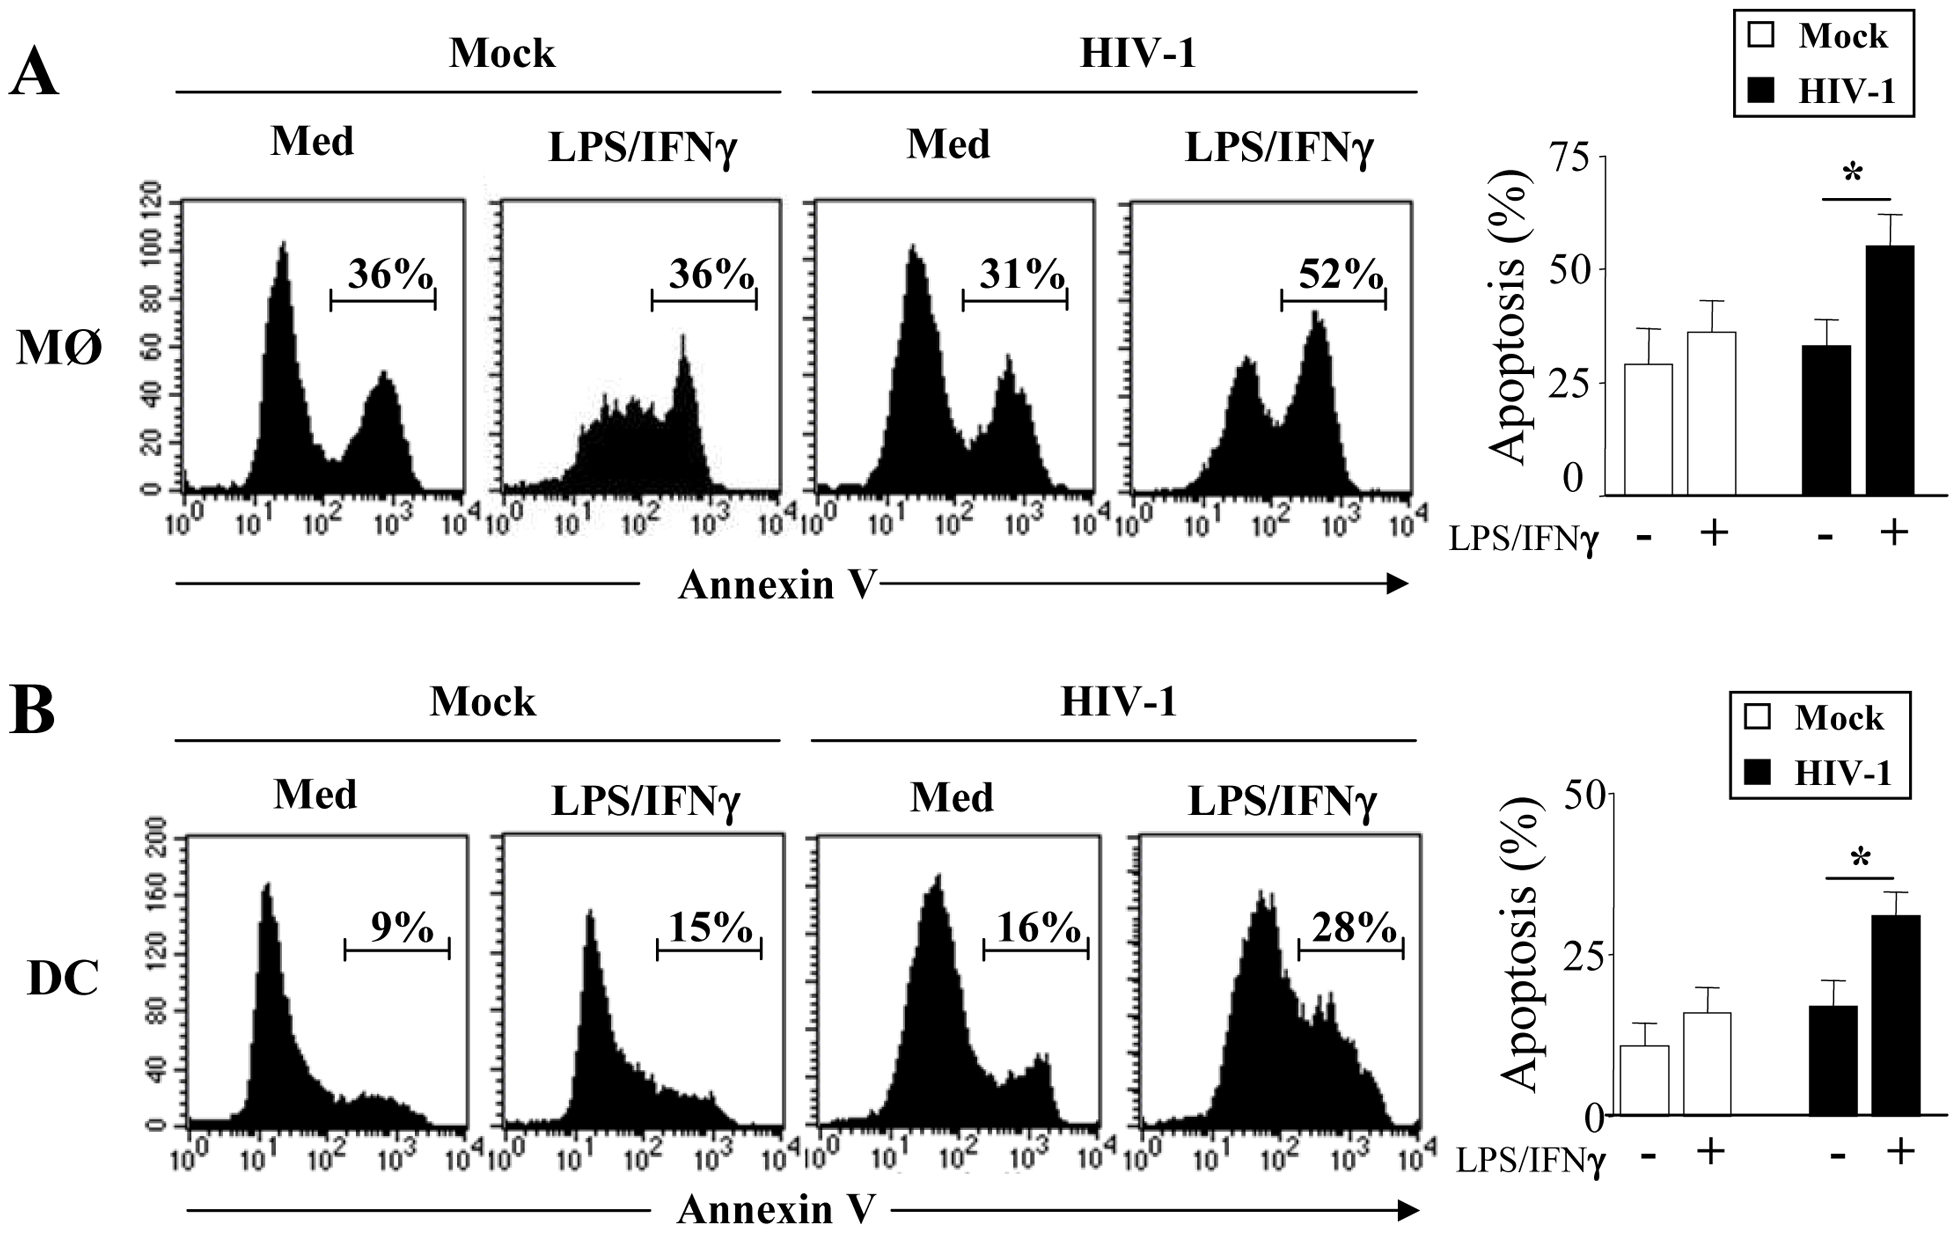 HIV-1 infected monocyte-derived macrophages and monocyte-derived DCs undergo apoptosis after stimulation.